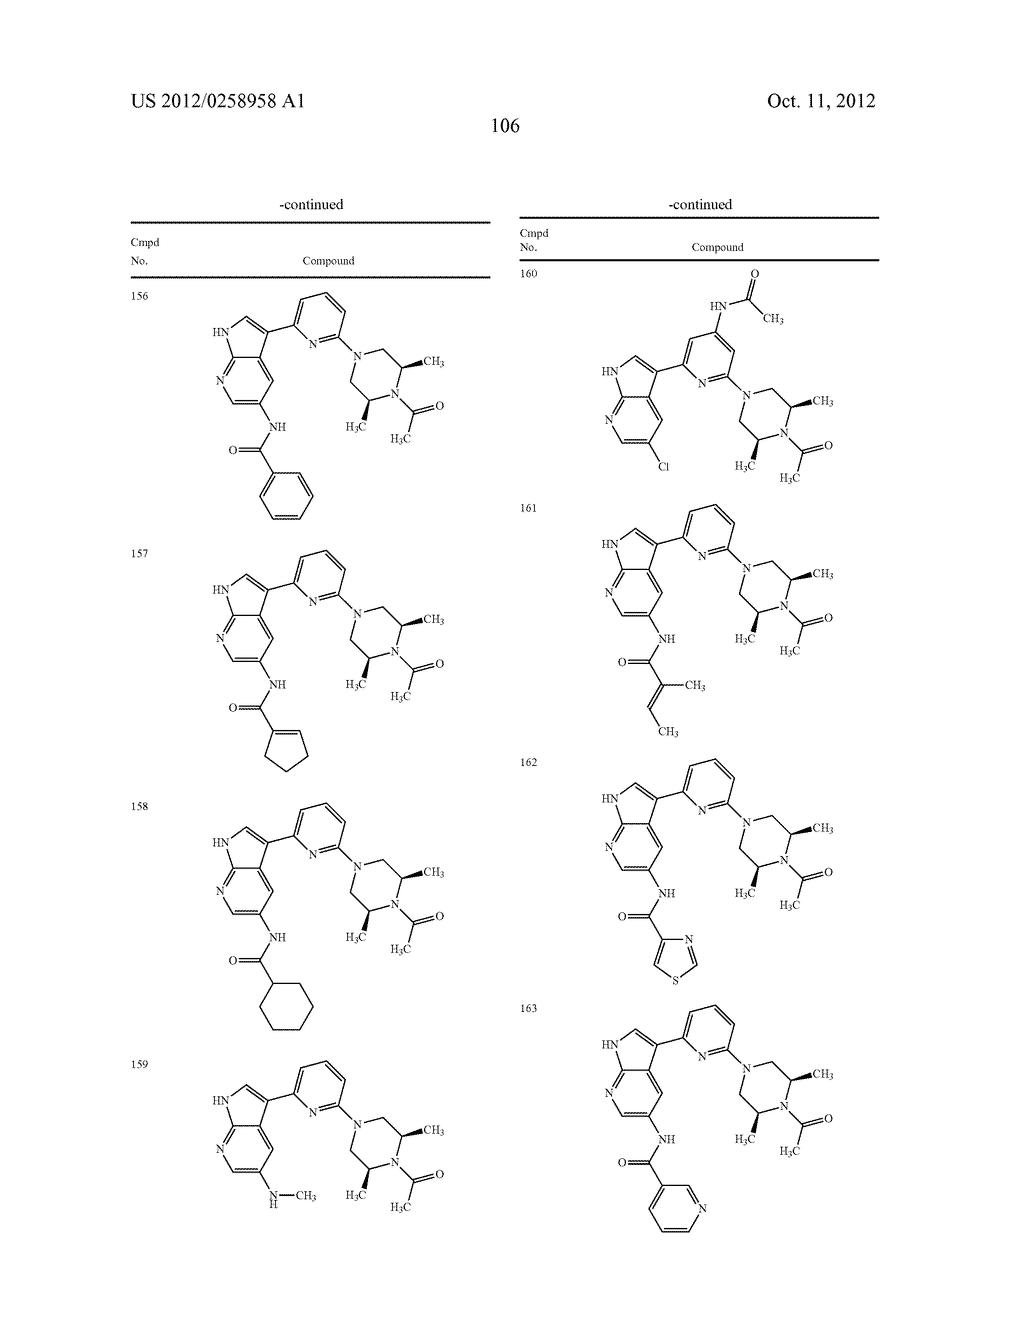 AZAINDOLES USEFUL AS INHIBITORS OF JAK AND OTHER PROTEIN KINASES - diagram, schematic, and image 107